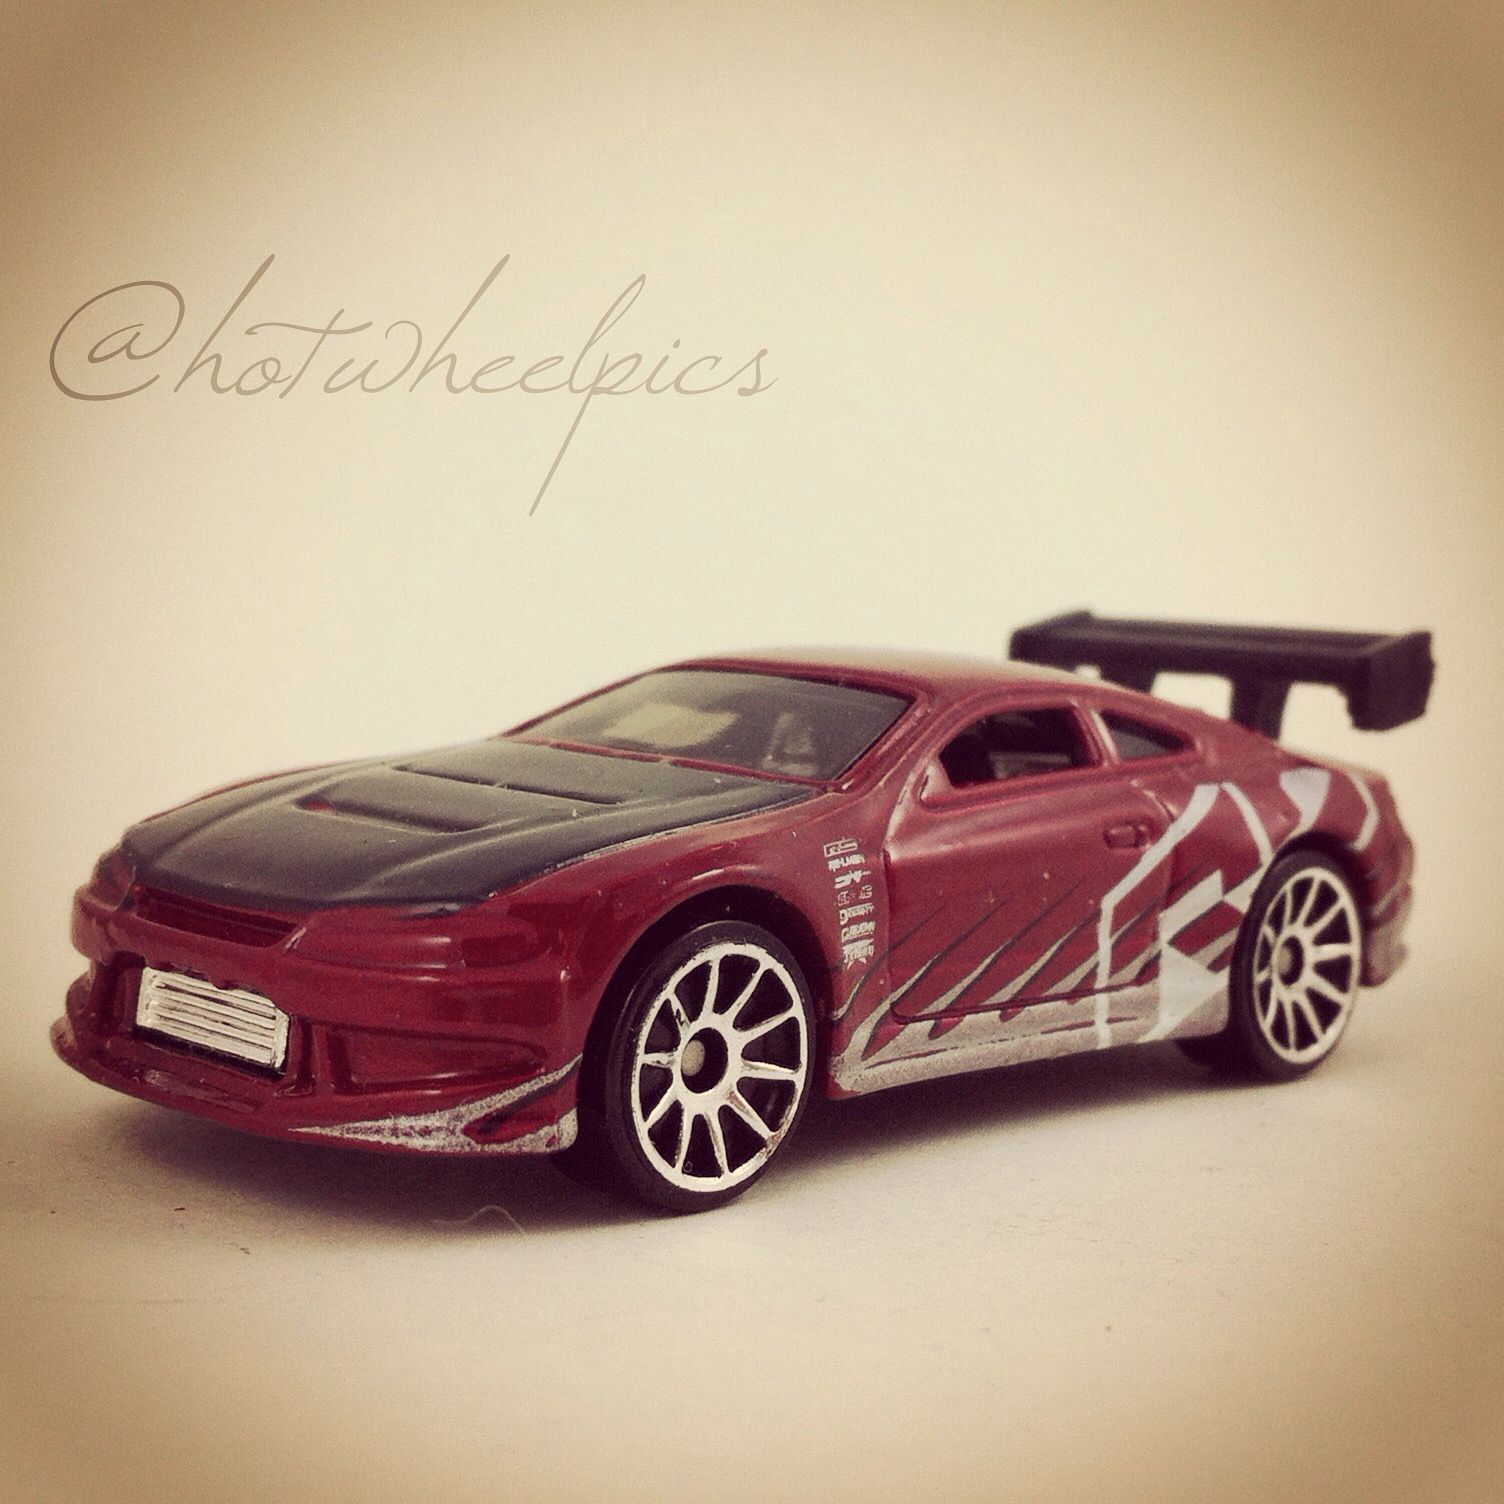 f68196849be1f16448775302a81c3b0e Mesmerizing Hot Wheels Speed Machines Lamborghini Countach Cars Trend